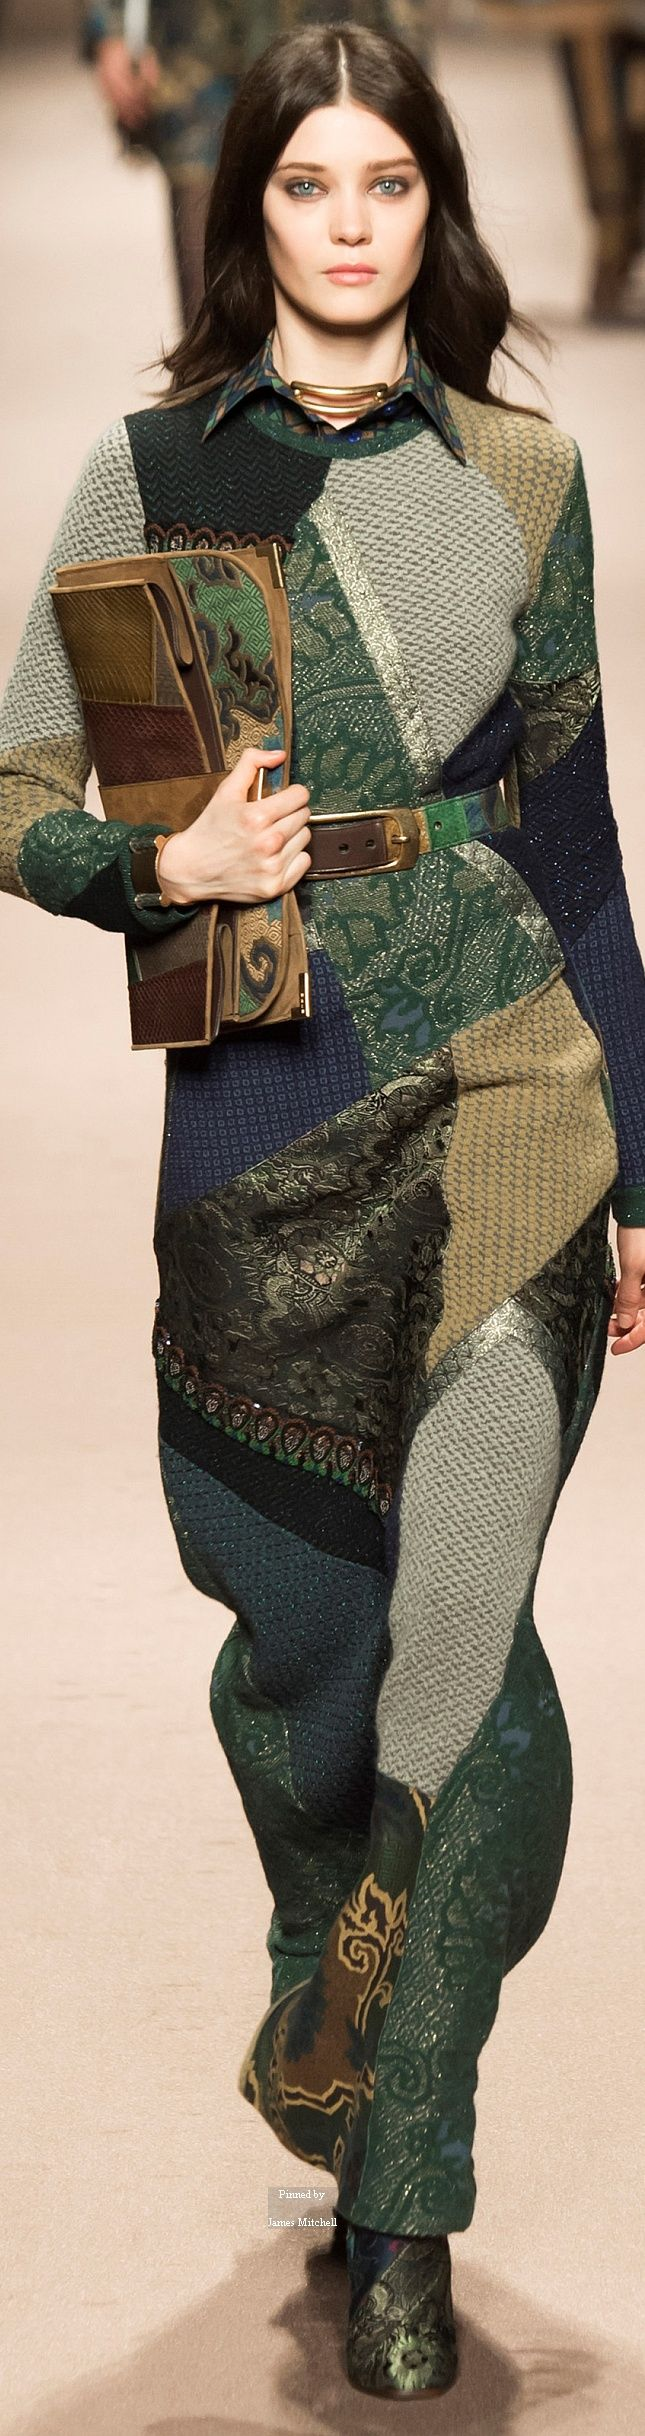 Etro Collections Fall Winter 2015-16 collection